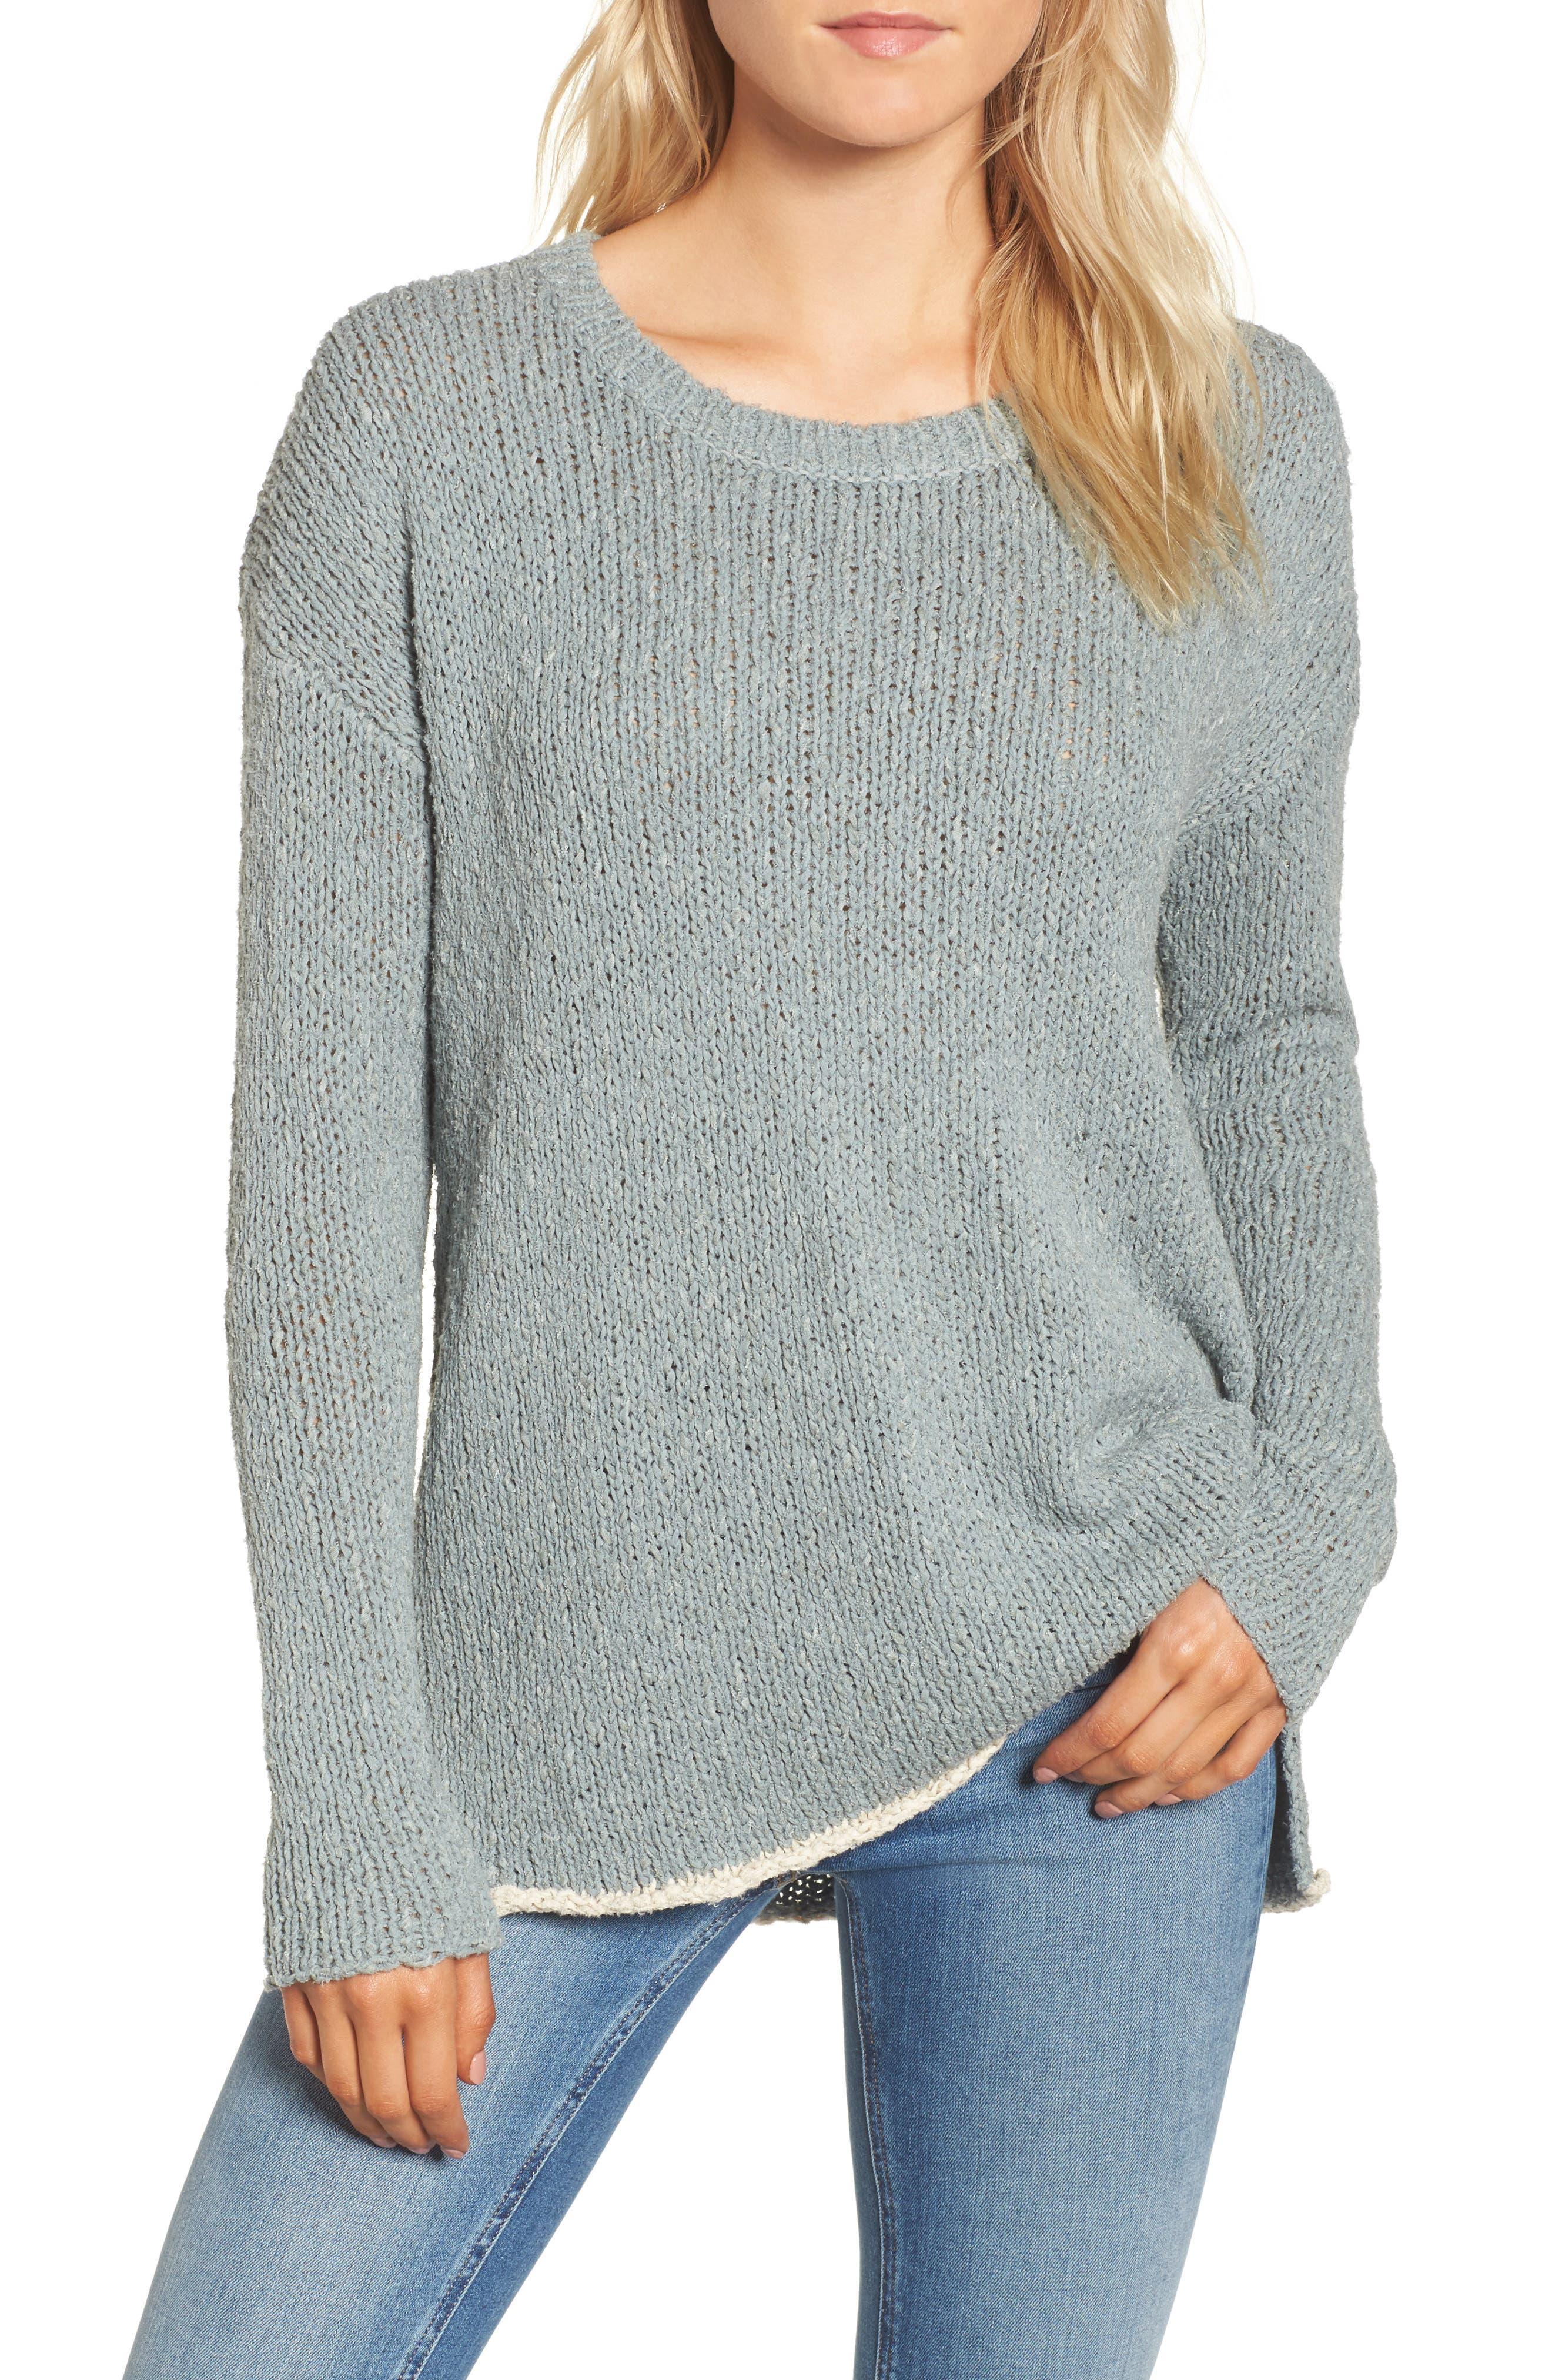 Oversize Sweater,                         Main,                         color, Dusty North